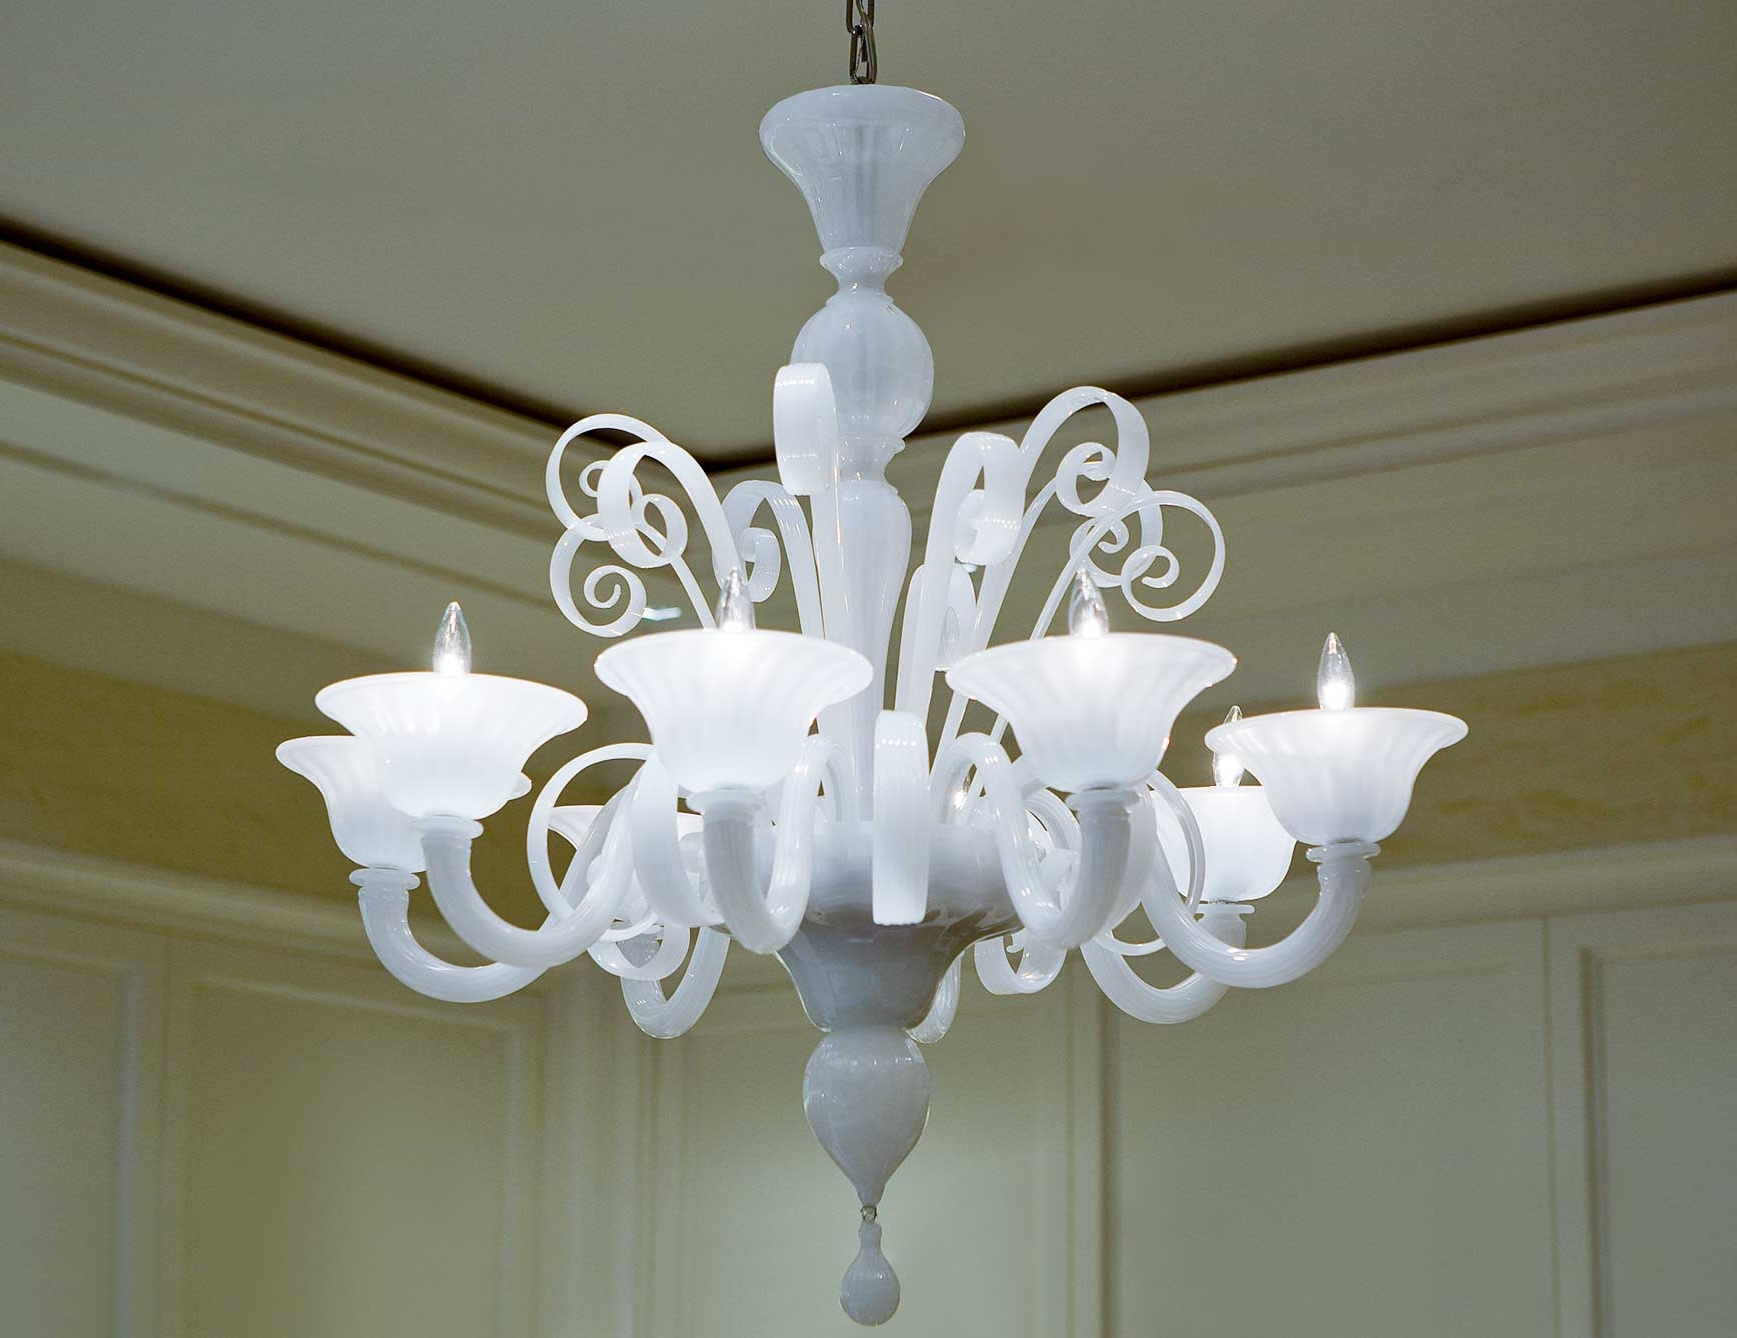 Nella Vetrina White Murano 8 Murano Chandelier In White Glass With Regard To Popular Murano Chandelier (Gallery 4 of 15)